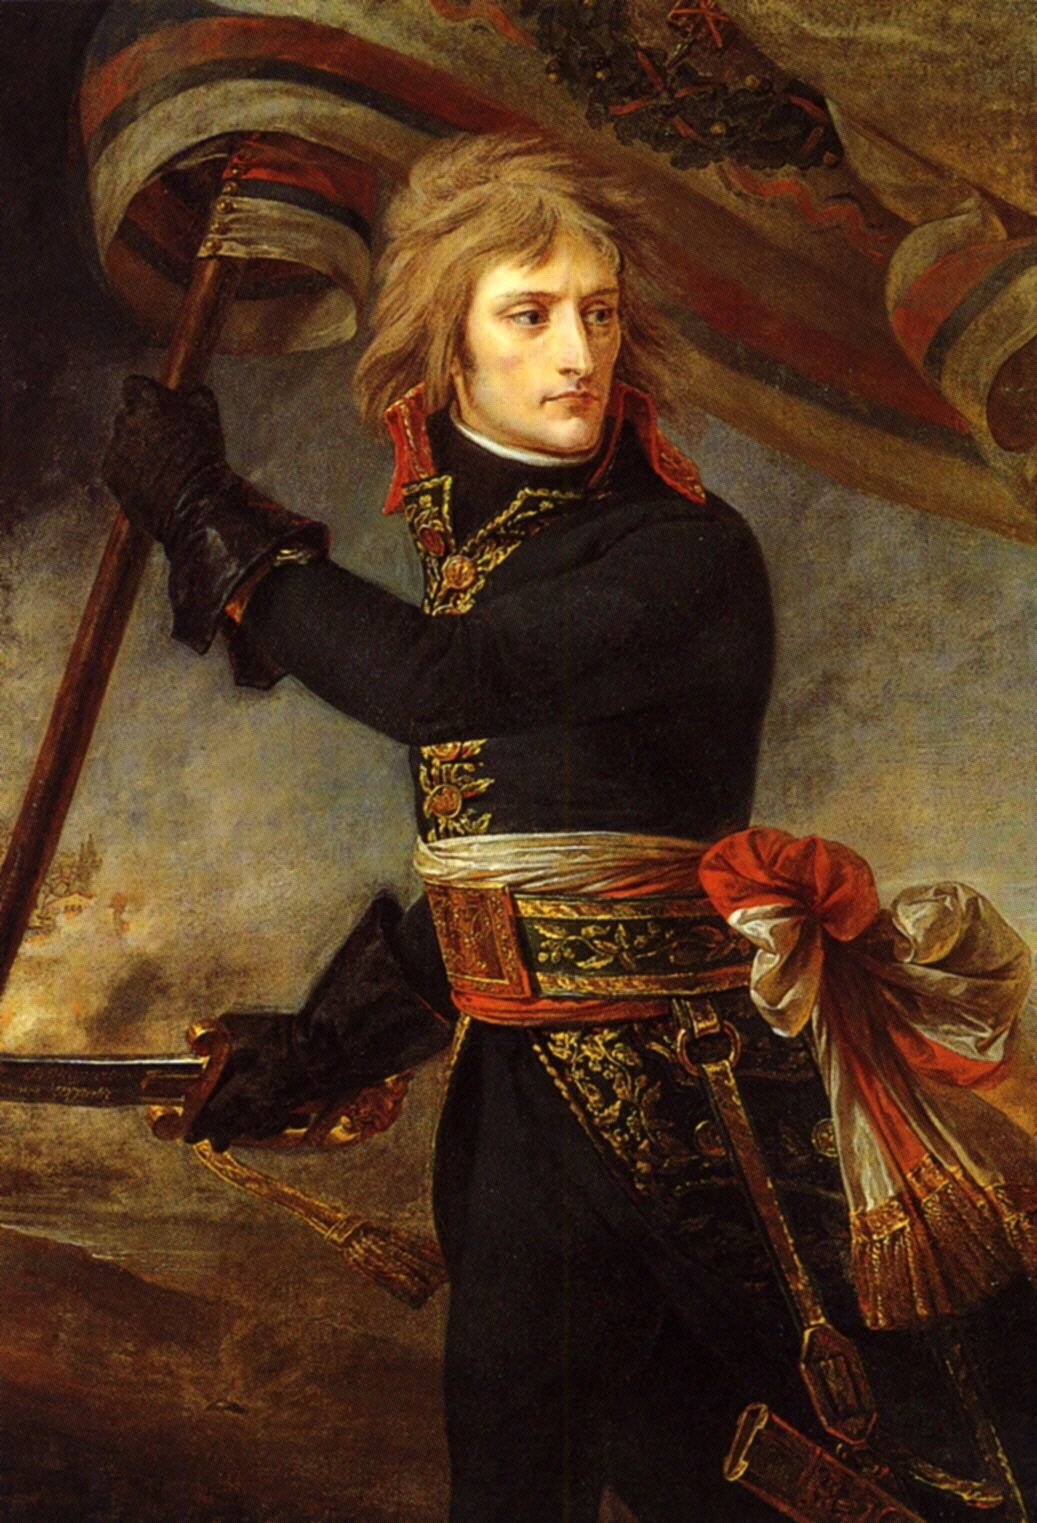 GROS NAPOLEON BONAPARTE ARCOLE BRIDGE Poster Painting Portrait Canvas art Prints